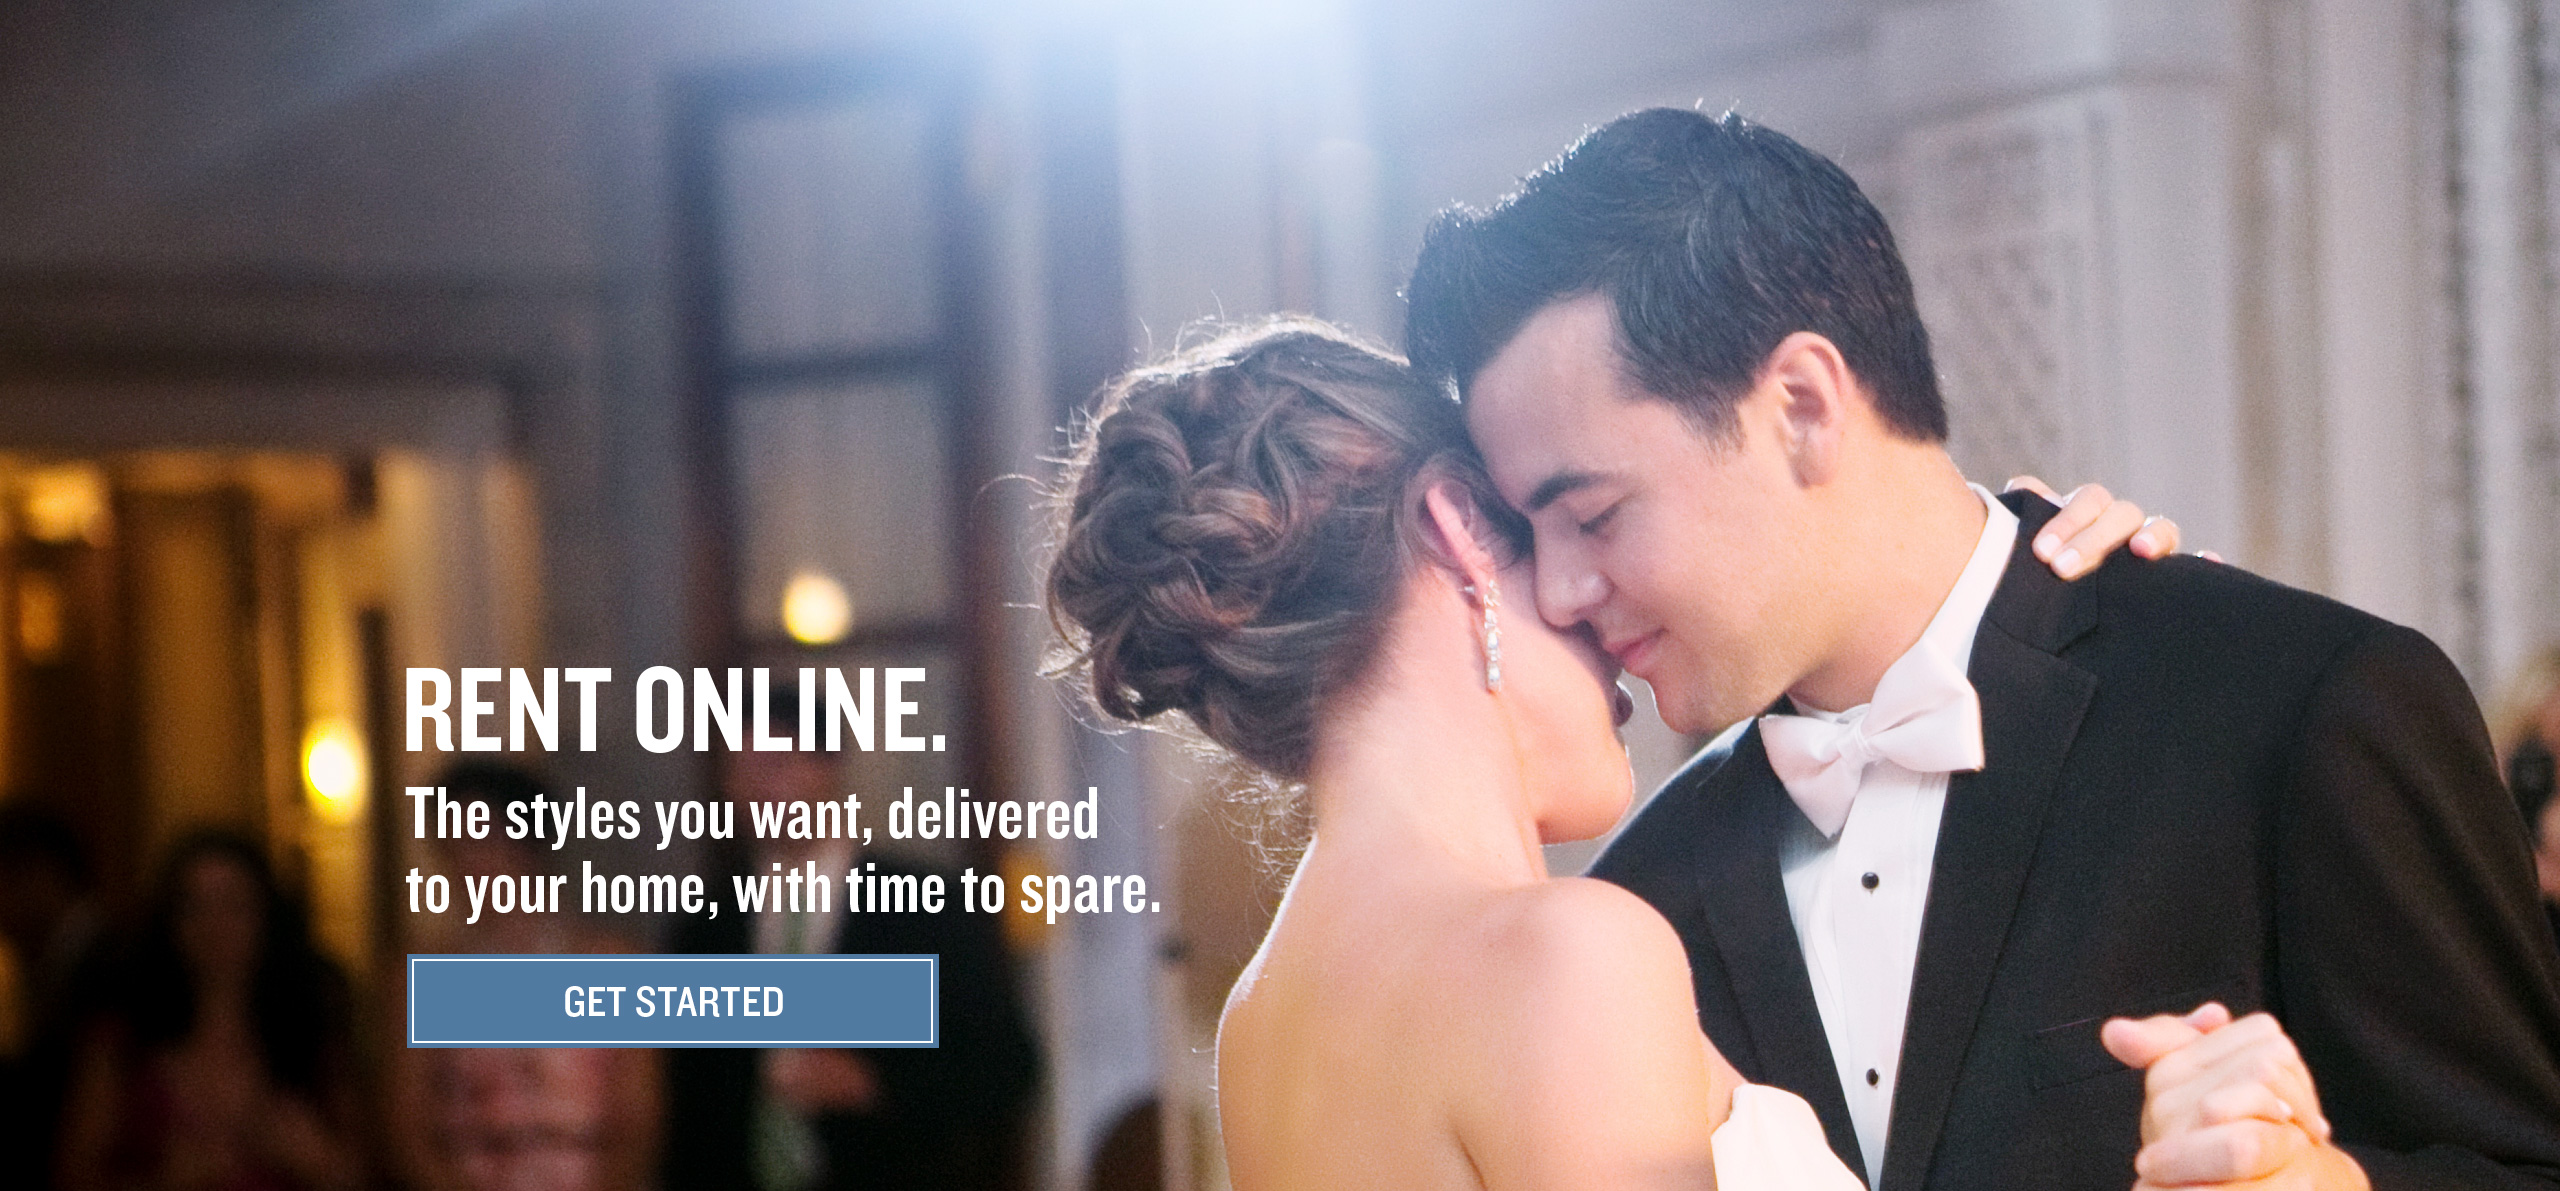 Browse our selection of tuxedos and suits for online rental.